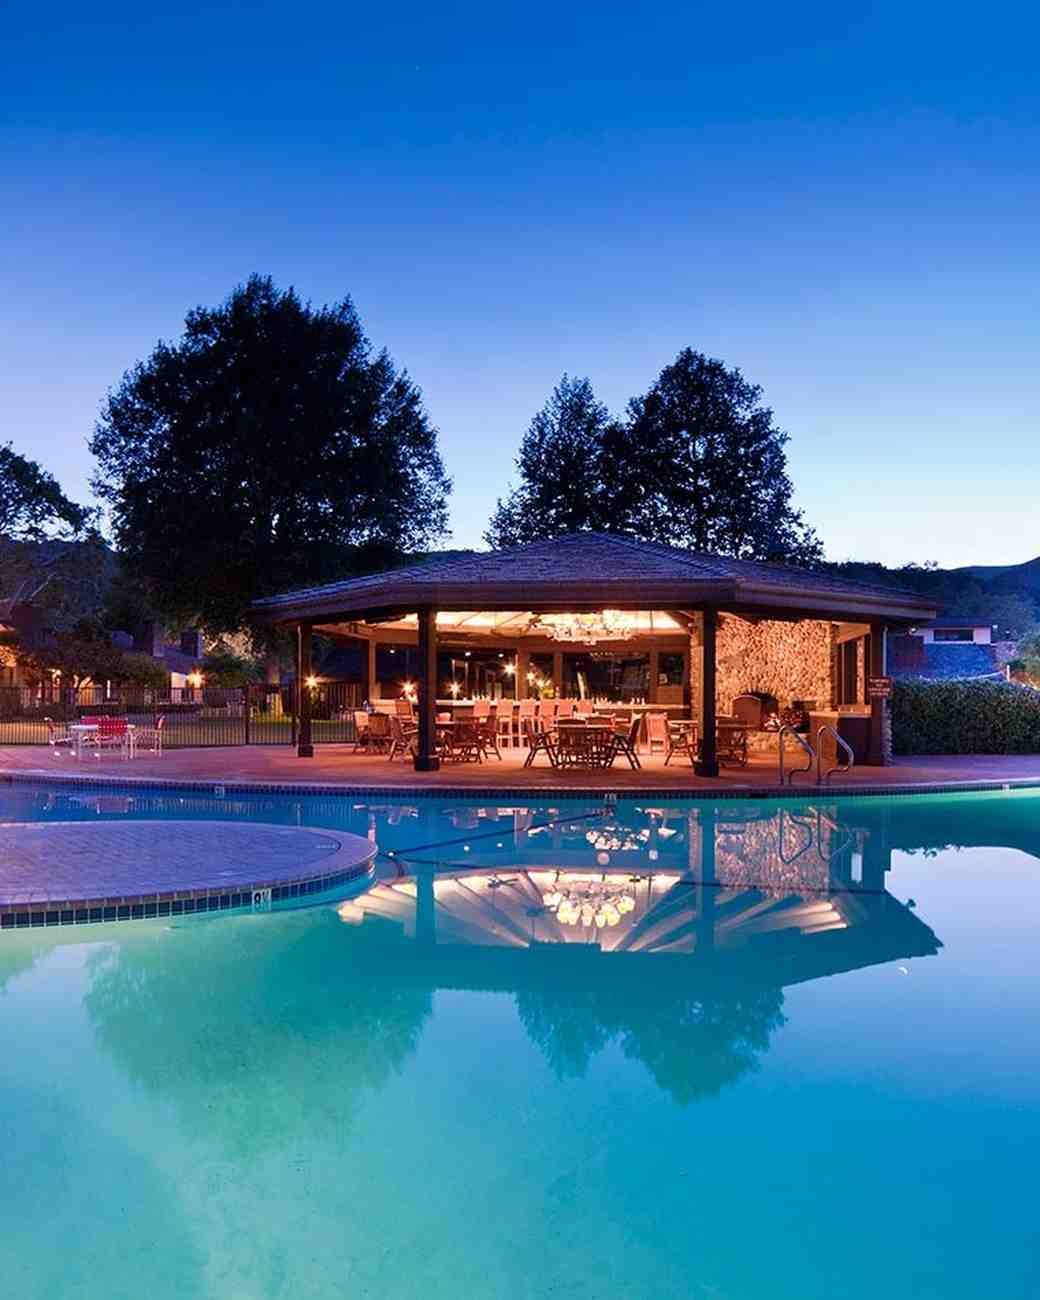 Outdoor pool at a bachelorette wellness retreat